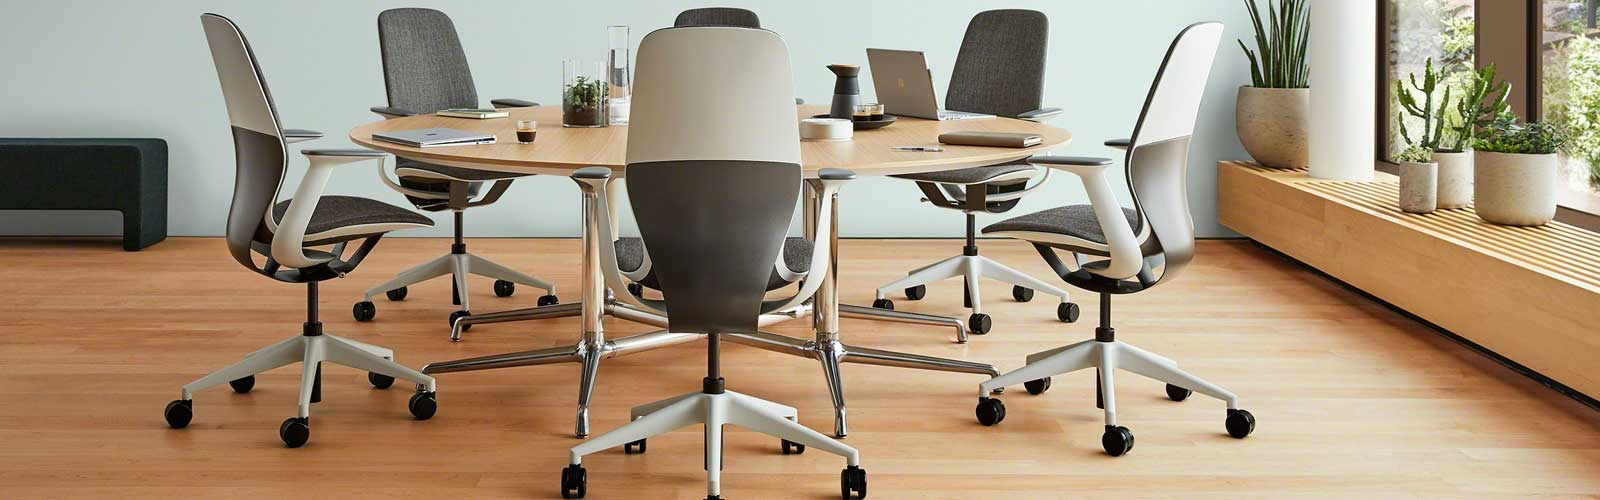 Steelcase Silq Chair in the timeline of when the office chair was invented